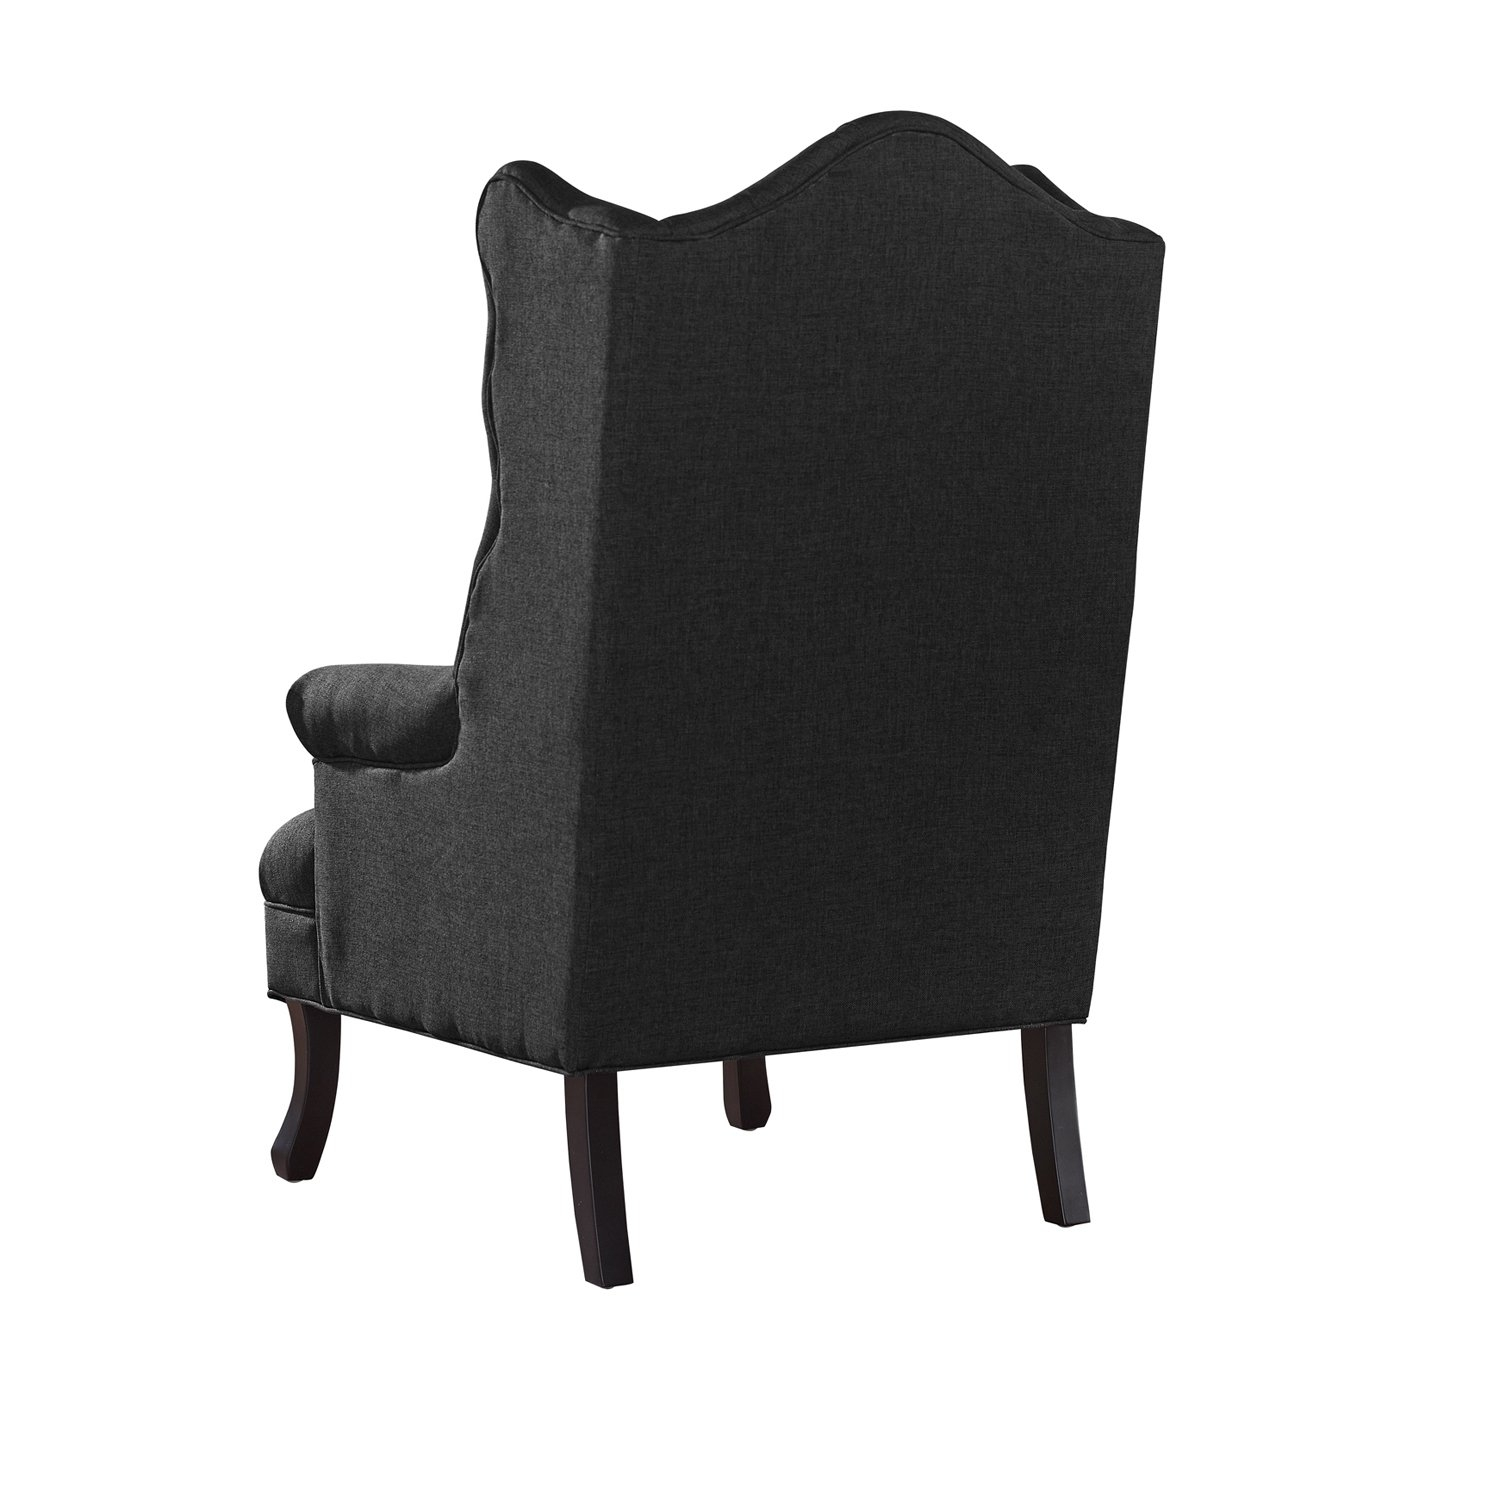 Norwood Upholstered Hostess Chairs Throughout Most Popular Shop Baxton Studio Norwood Grey Fabric Upholstered Wing Back Accent (#10 of 20)